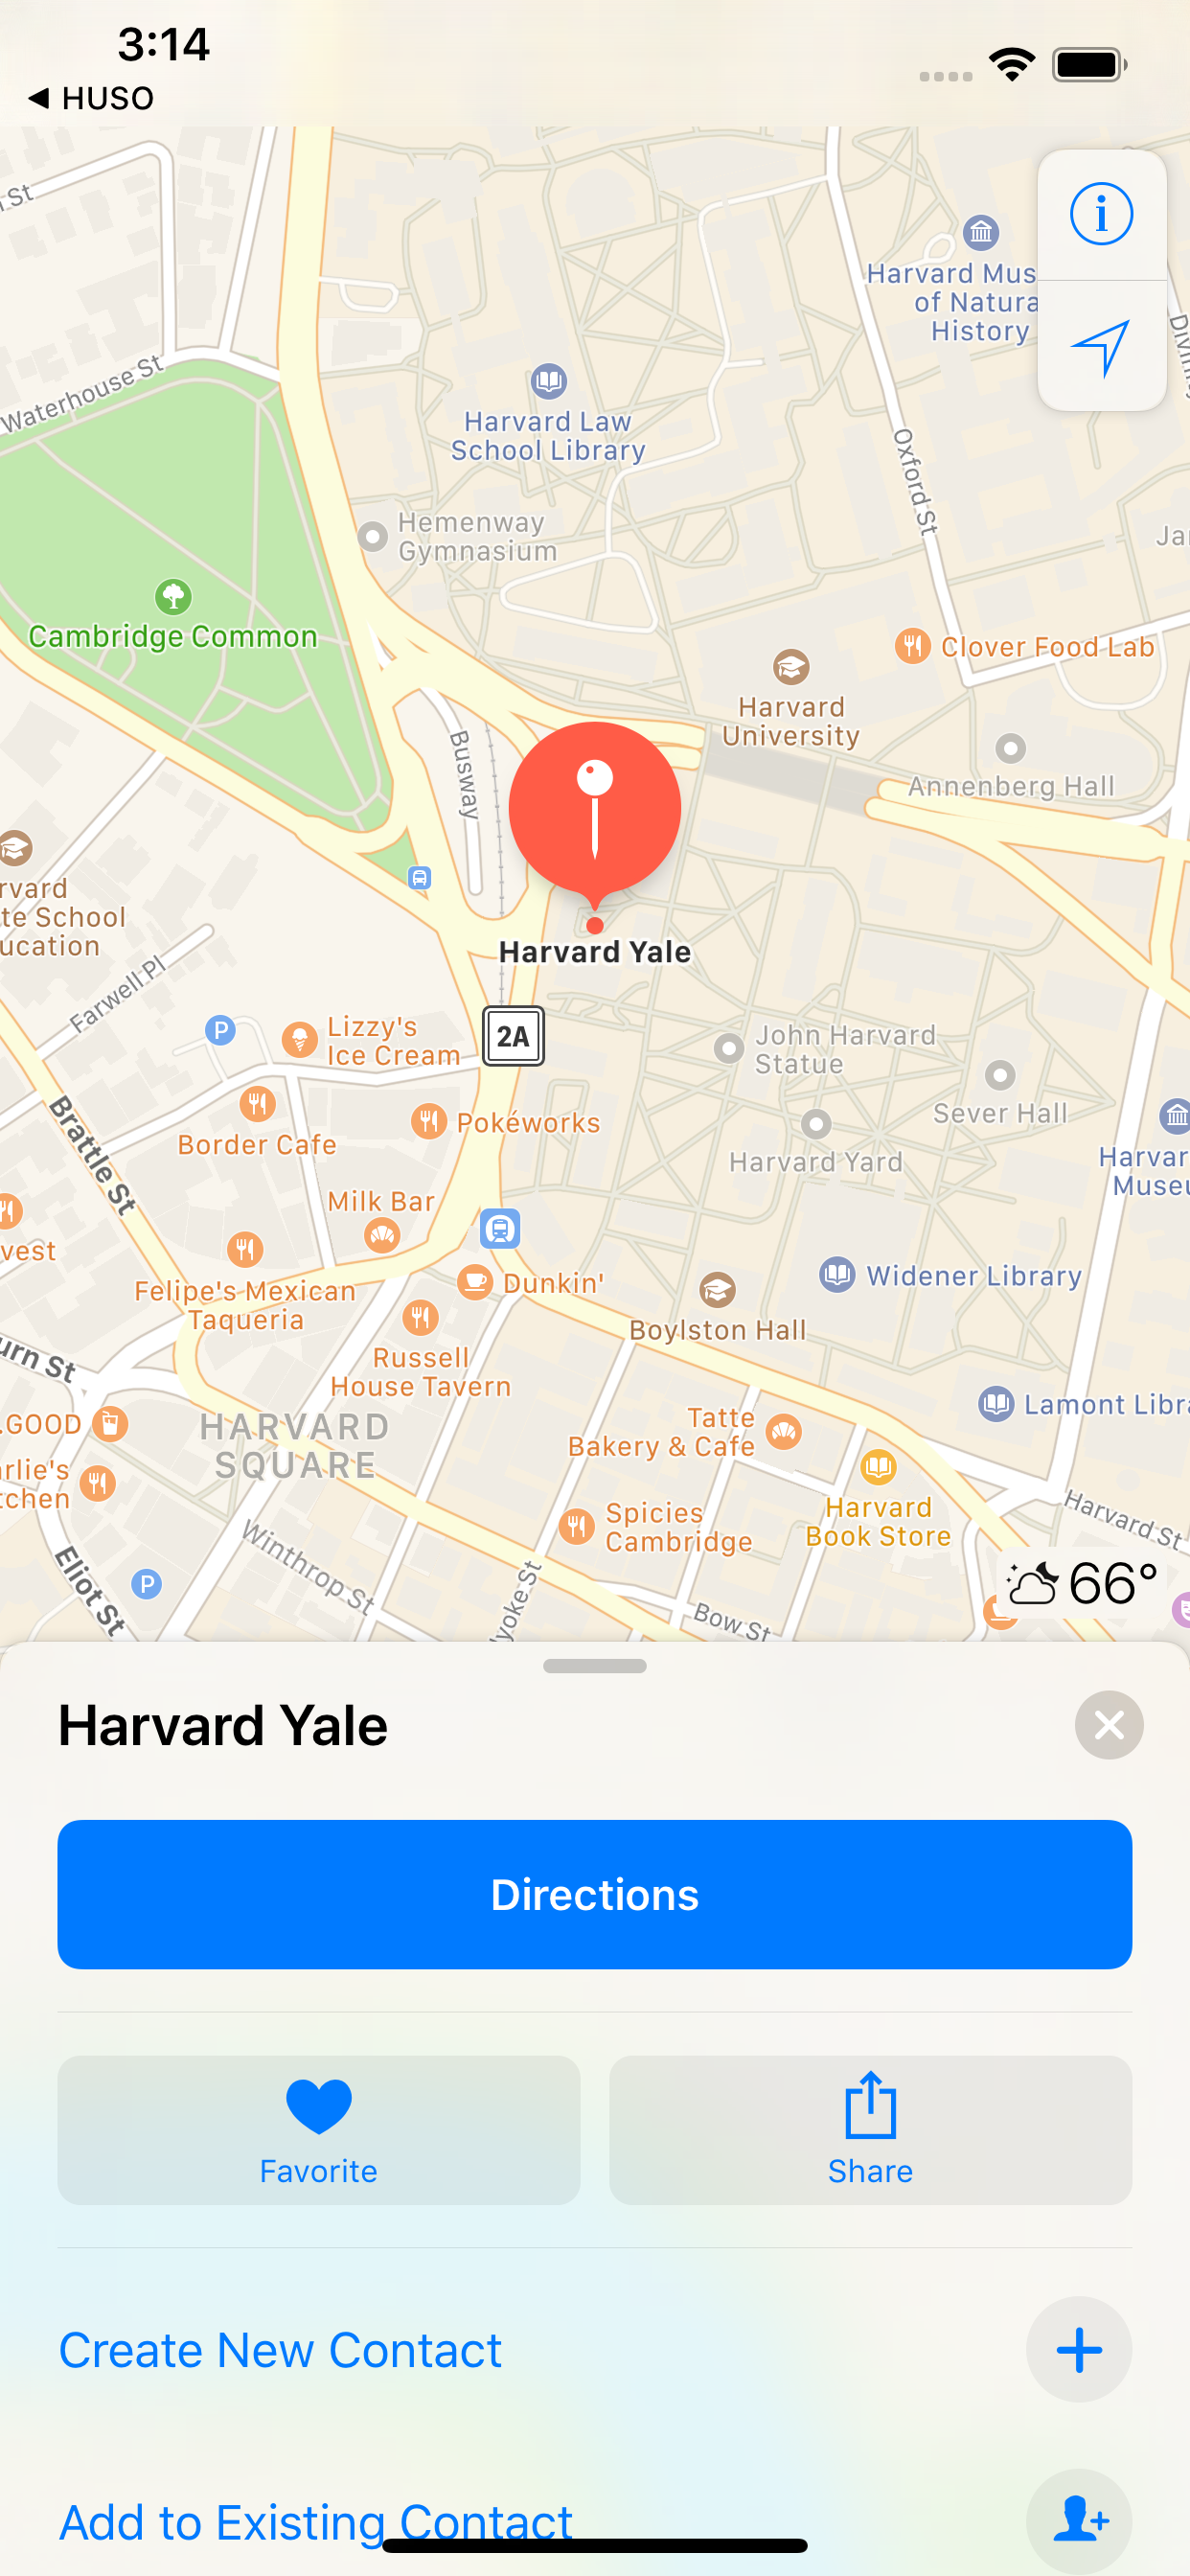 Clicking on Events Opens Maps